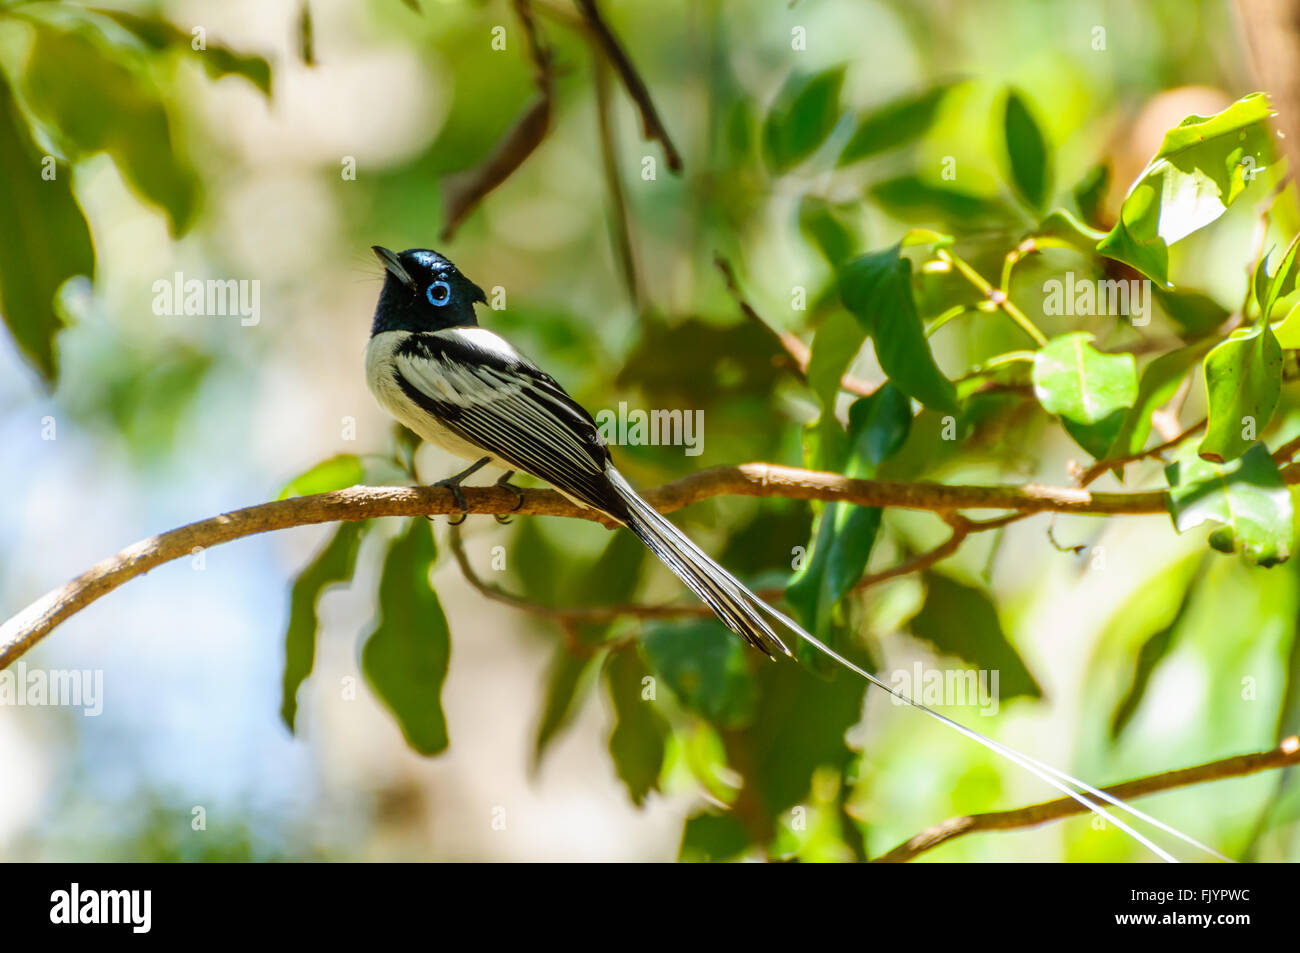 Terpsiphone mutata: Male Malagasy Paradise Flycatcher resting on a branch Stock Photo